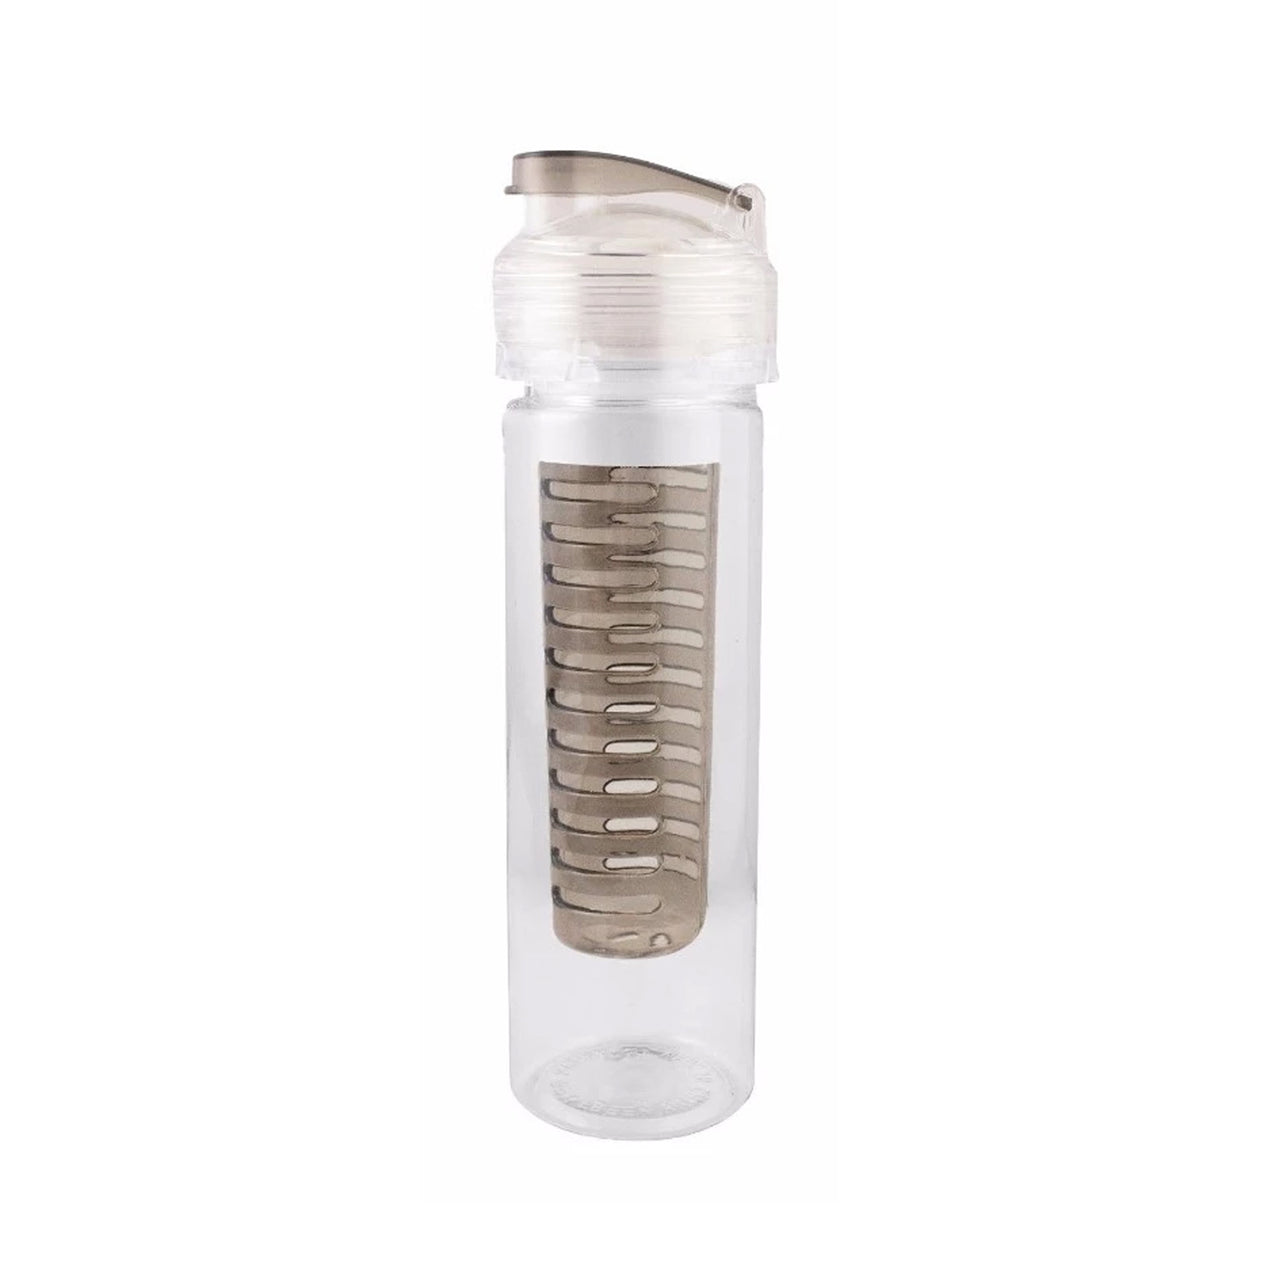 700ml Infuser Sipper Water Bottle - Black